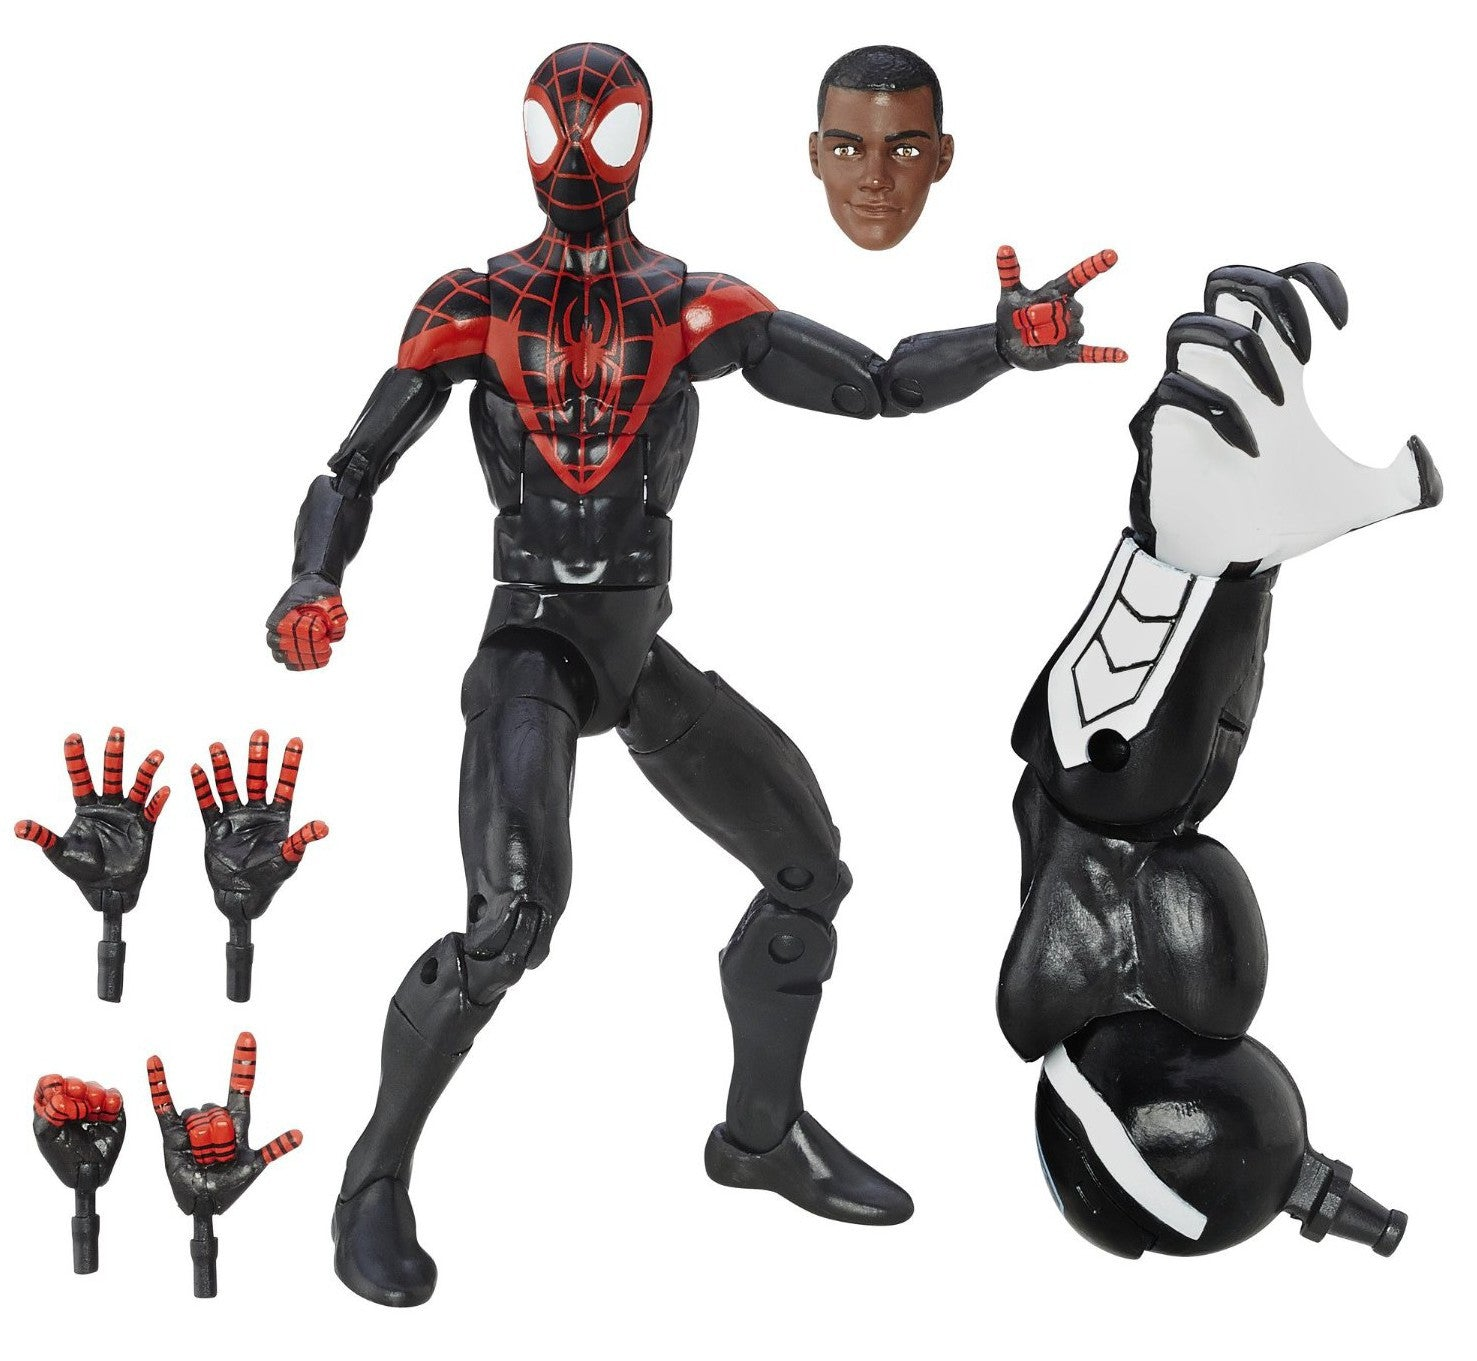 Marvel Legends - Marvel's Space Venom BAF - Spider-Man - Ultimate Spider-Men - Miles Morales (B6903)